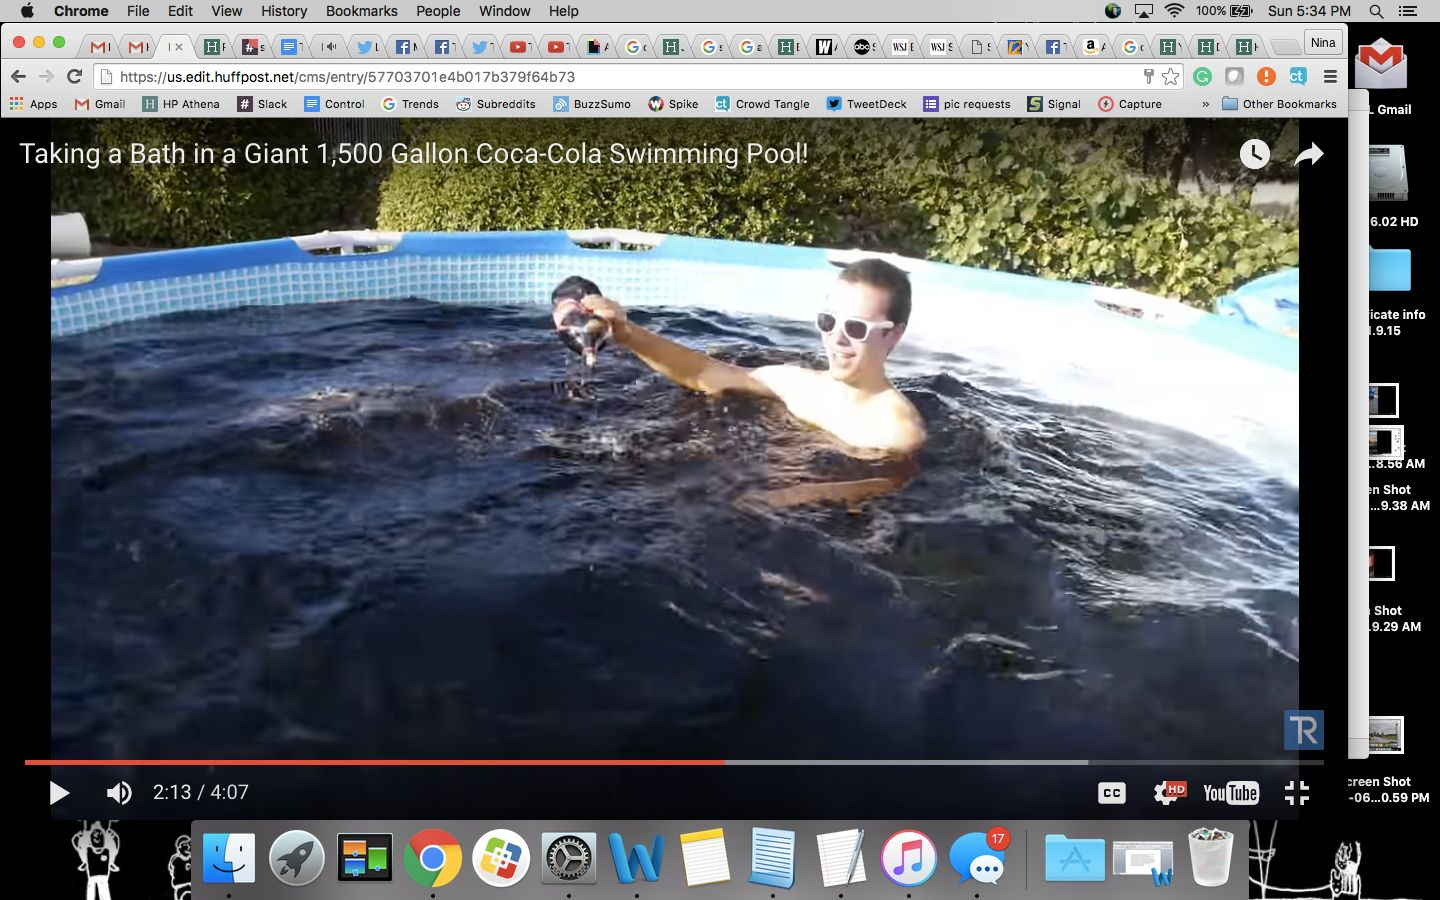 Ryan soaked in the Coke-filled pool for 20 minutes, his videographer said.